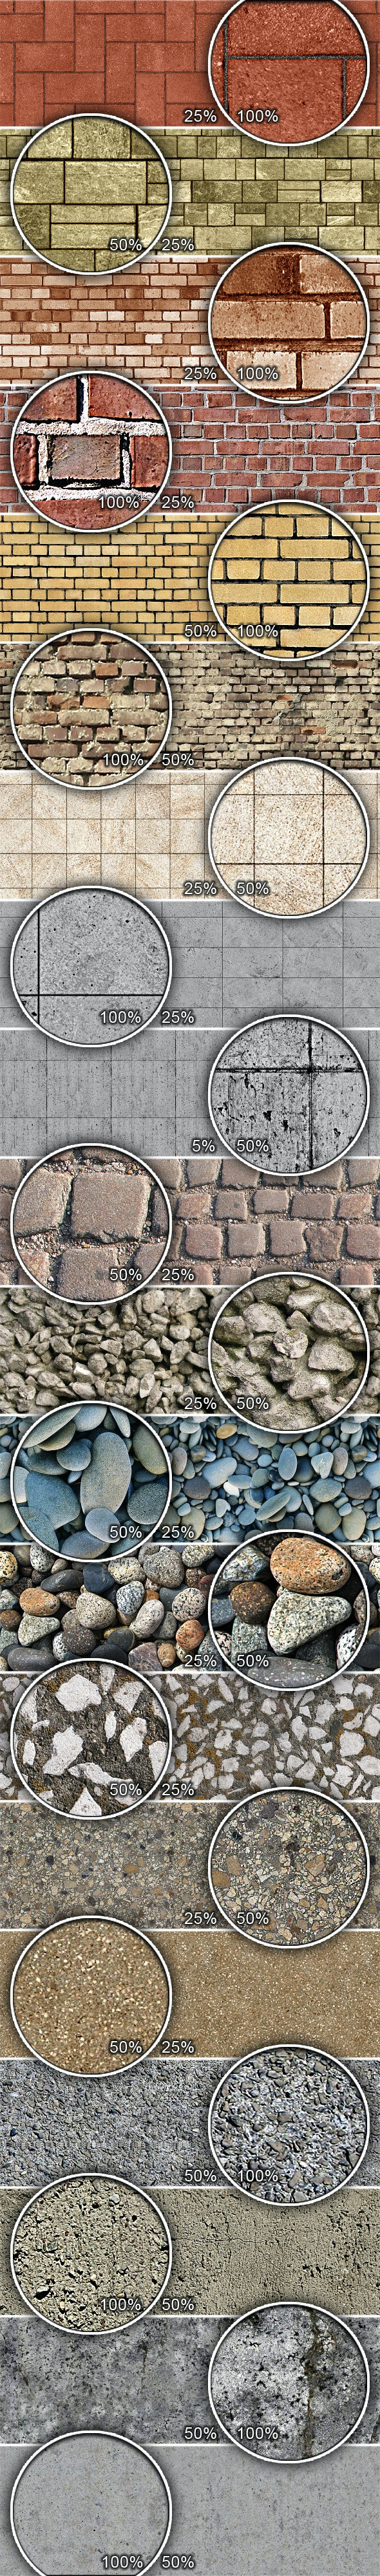 Bricks and Stones Tileable Patterns - Urban Textures / Fills / Patterns